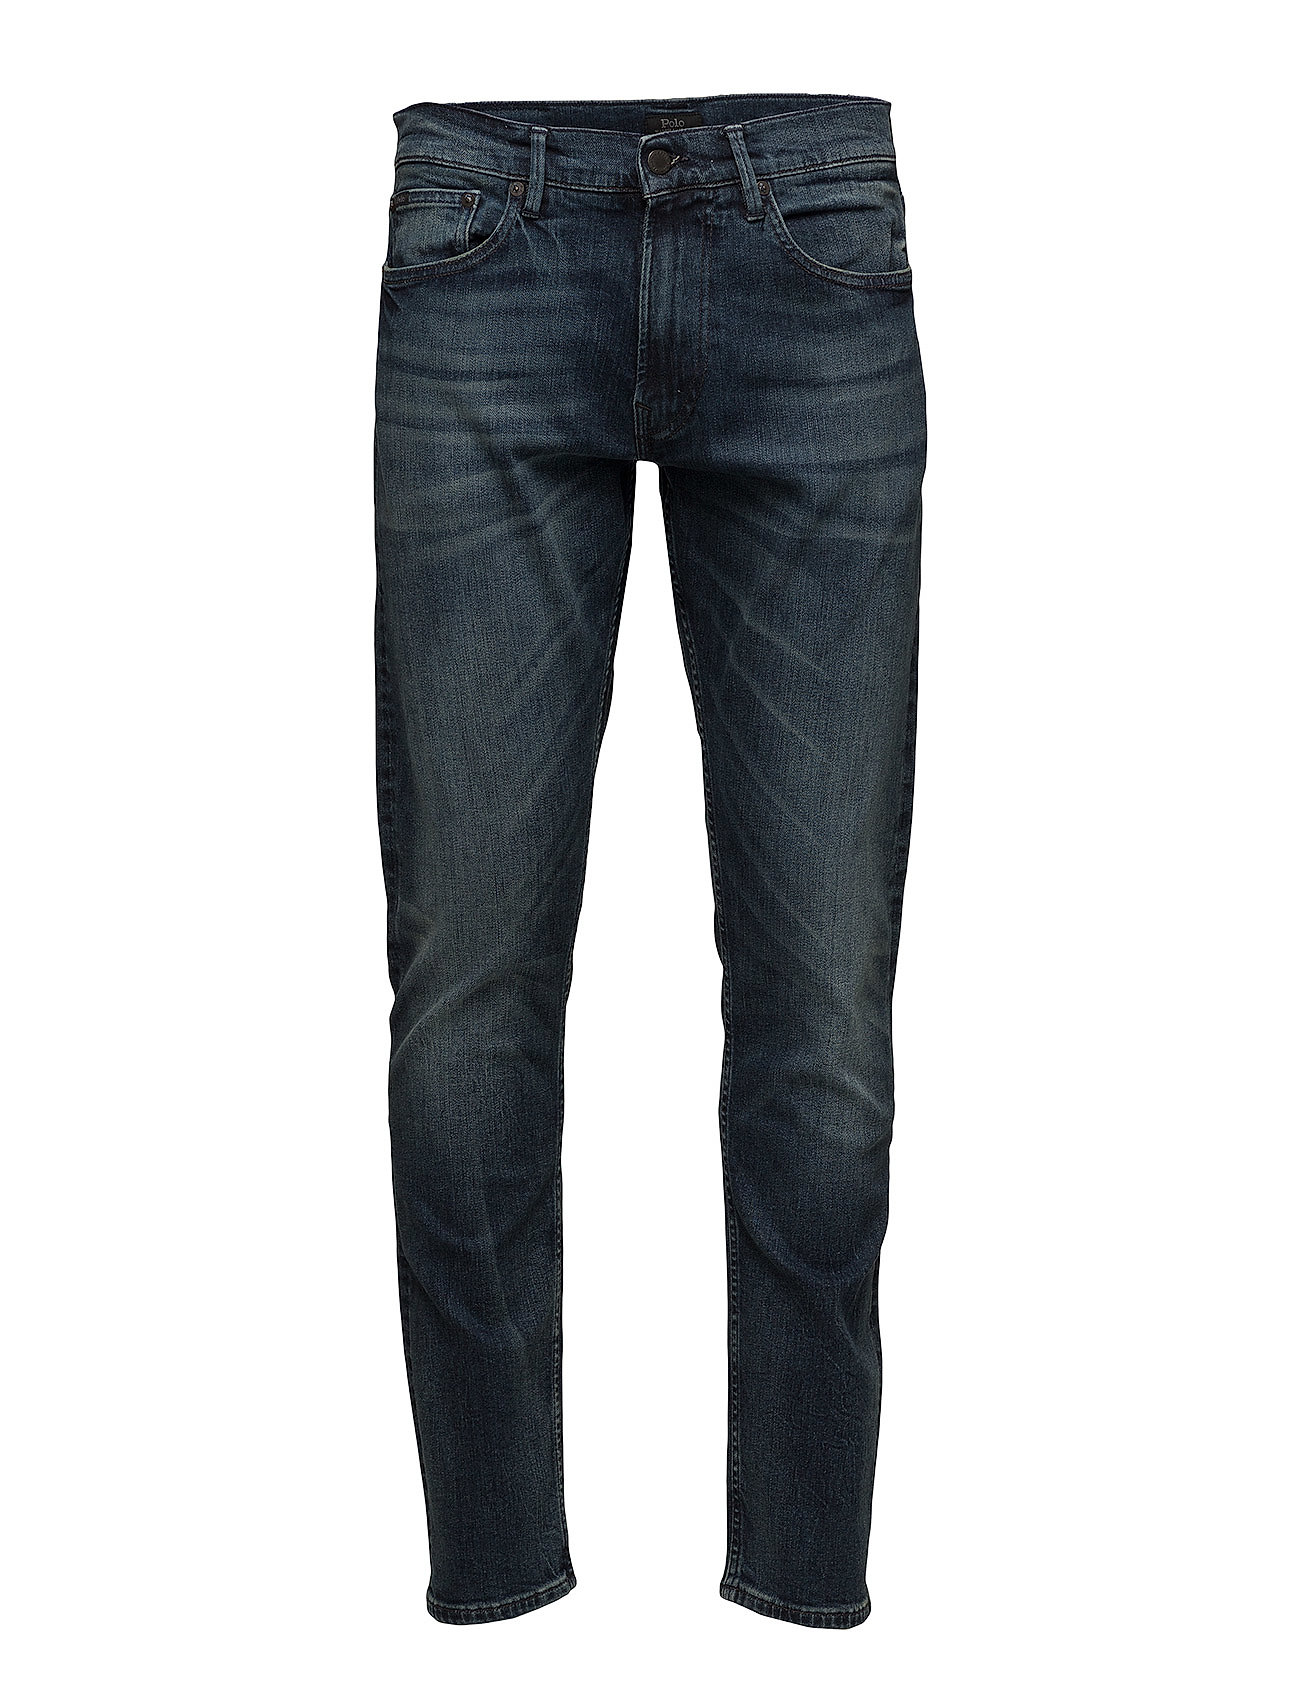 Polo Ralph Lauren Sullivan Slim Performance Jean - MYERS STRETCH